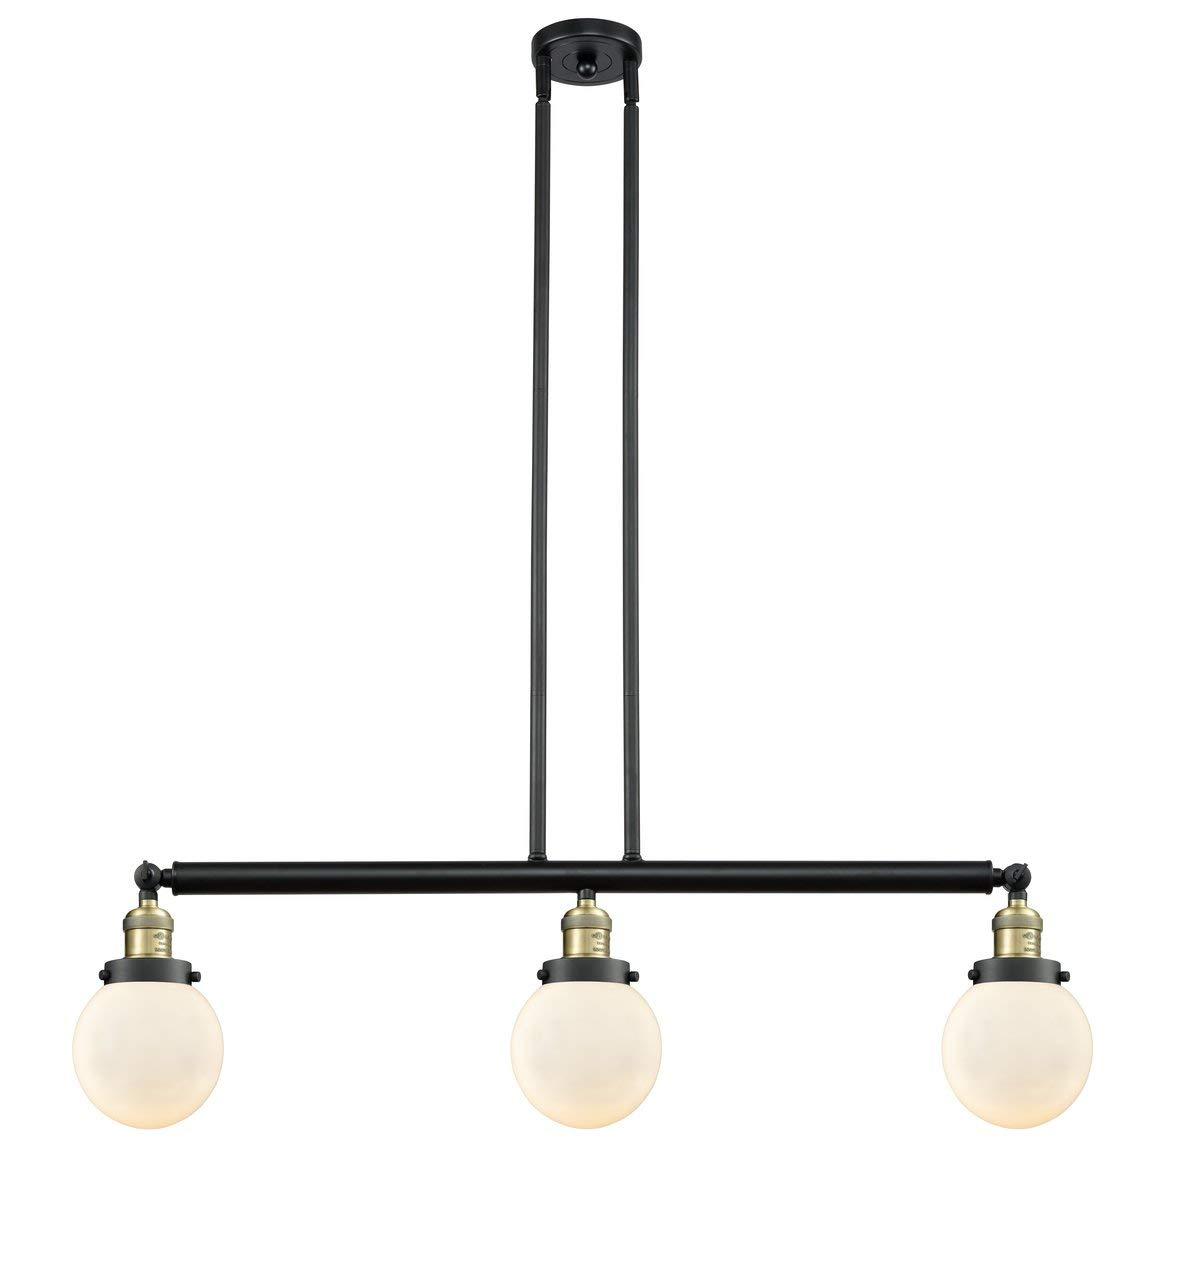 INNOVATIONS LIGHTING 213-BAB-S-G201-6-LED 3 Light Vintage Dimmable LED Beacon 38 inch Island Light